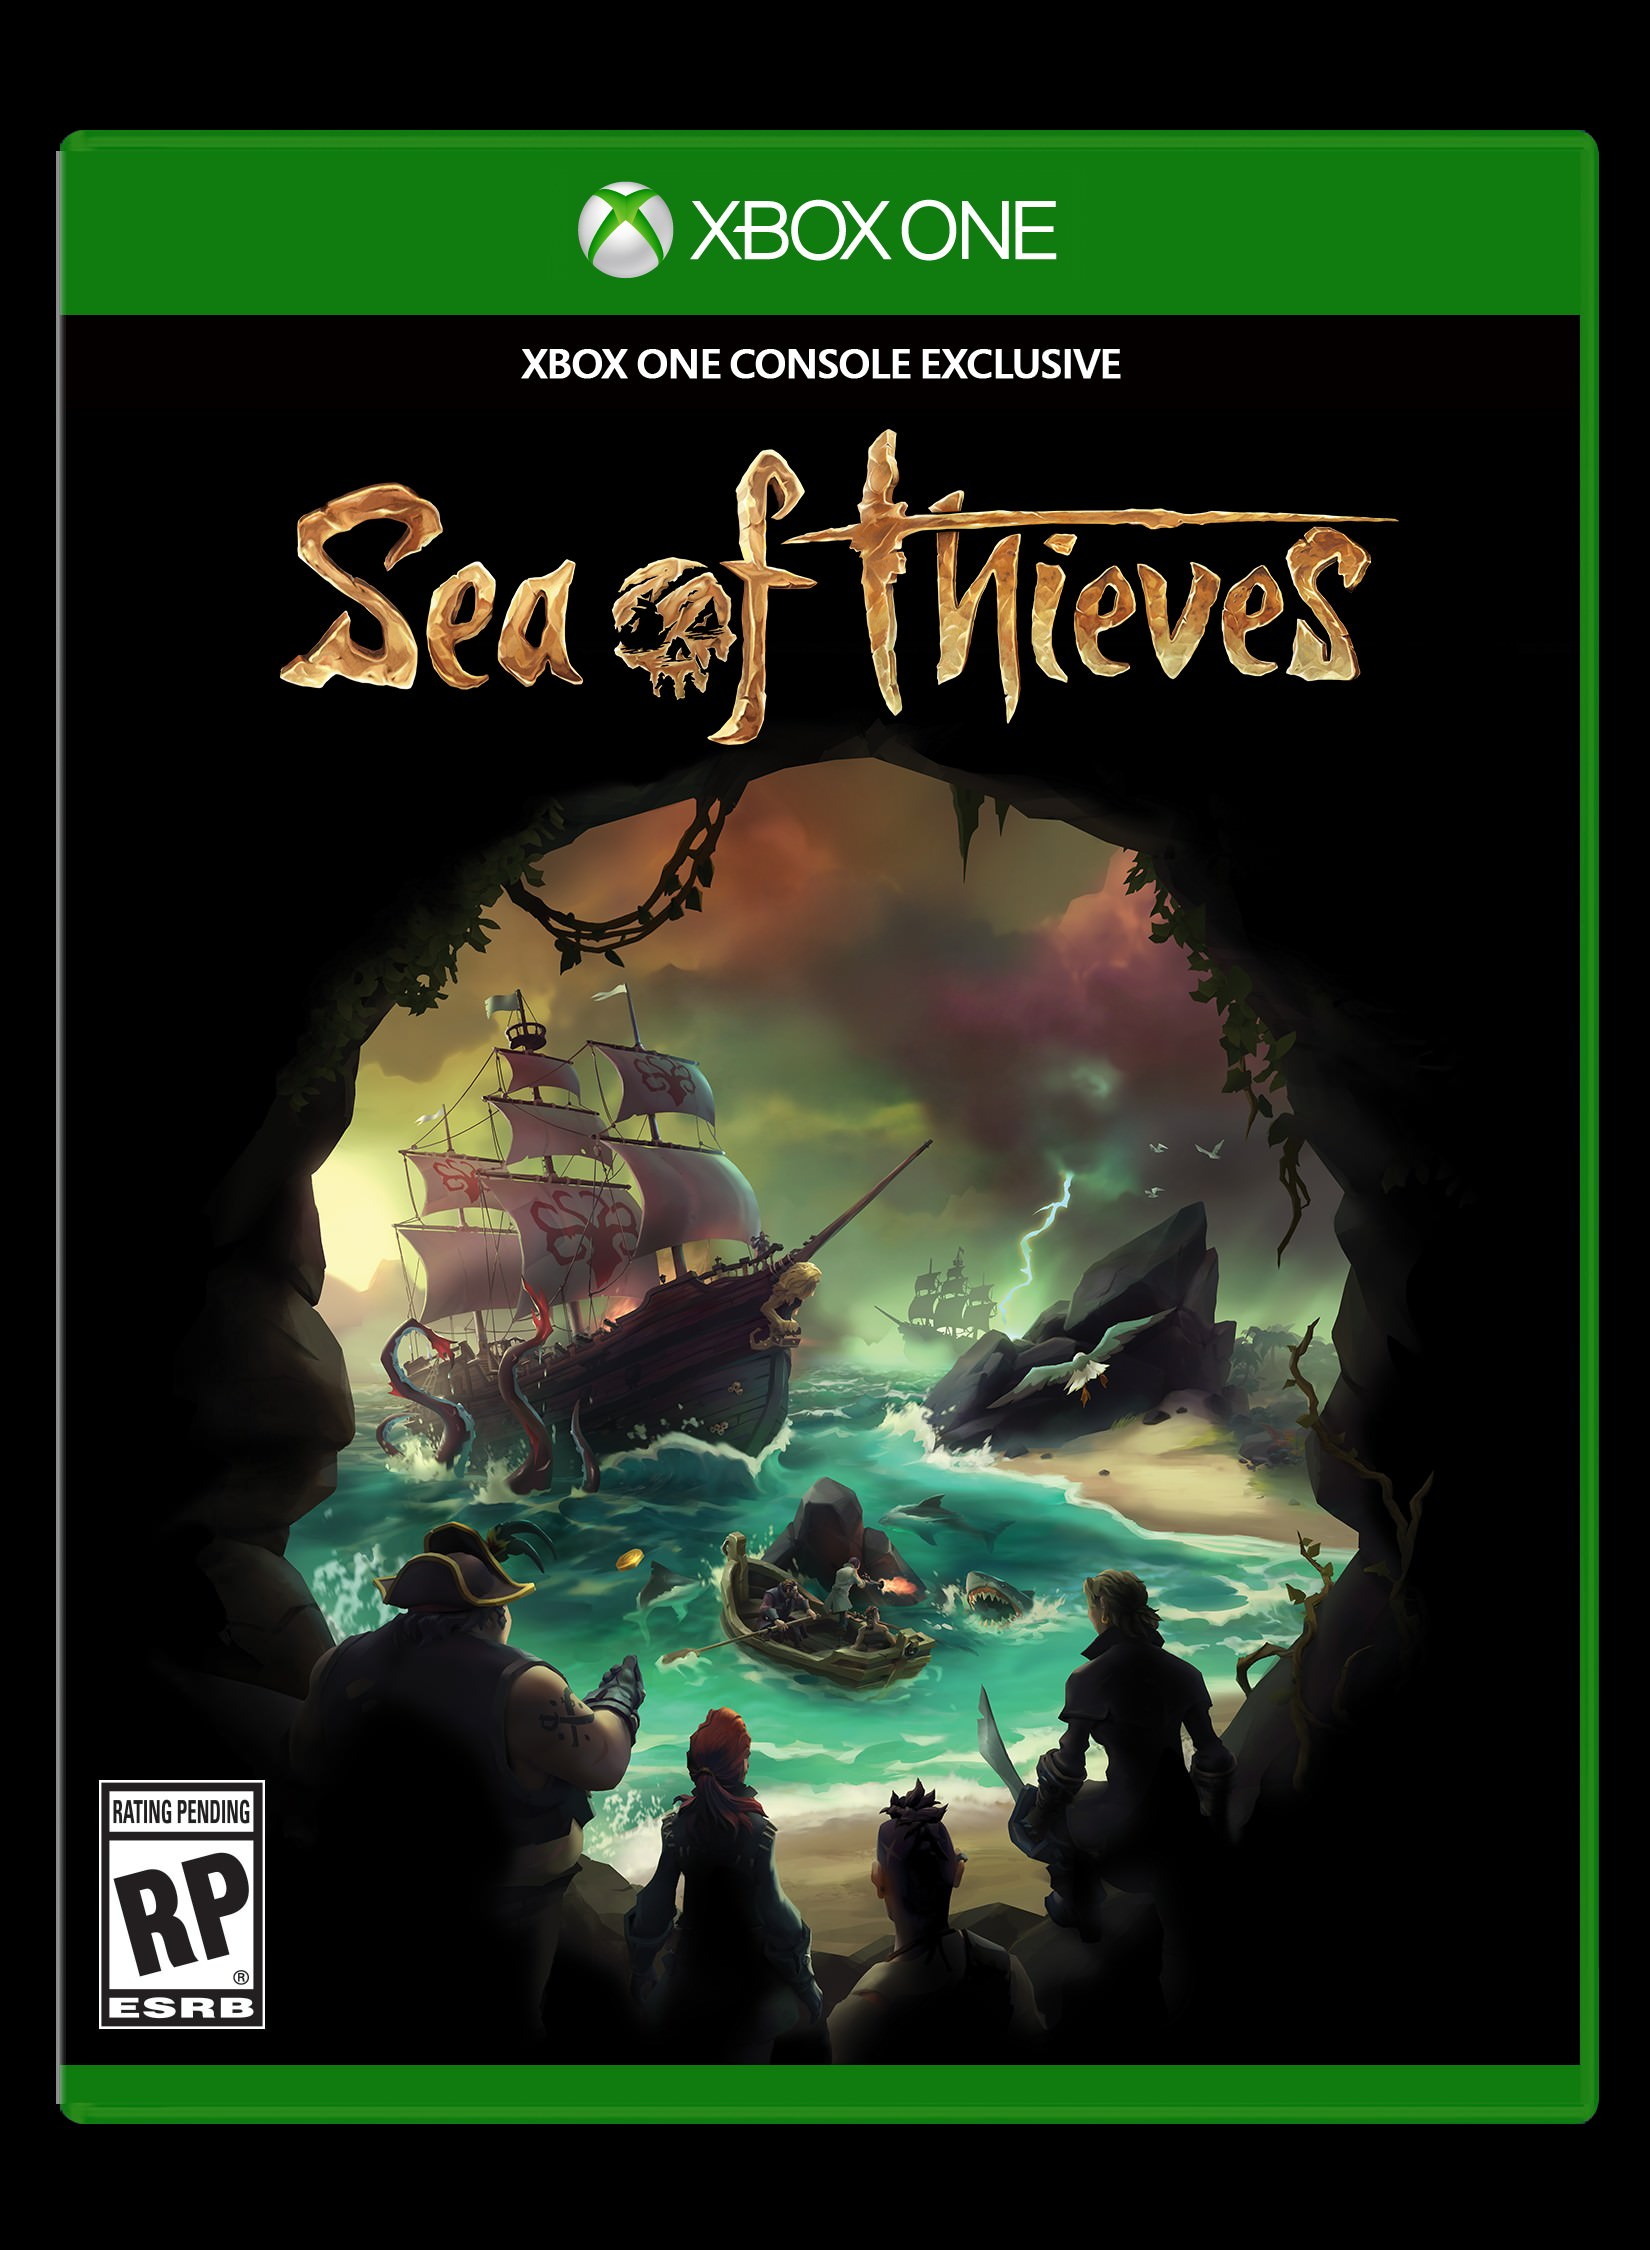 Sea of Thieves - Cover Art (1)